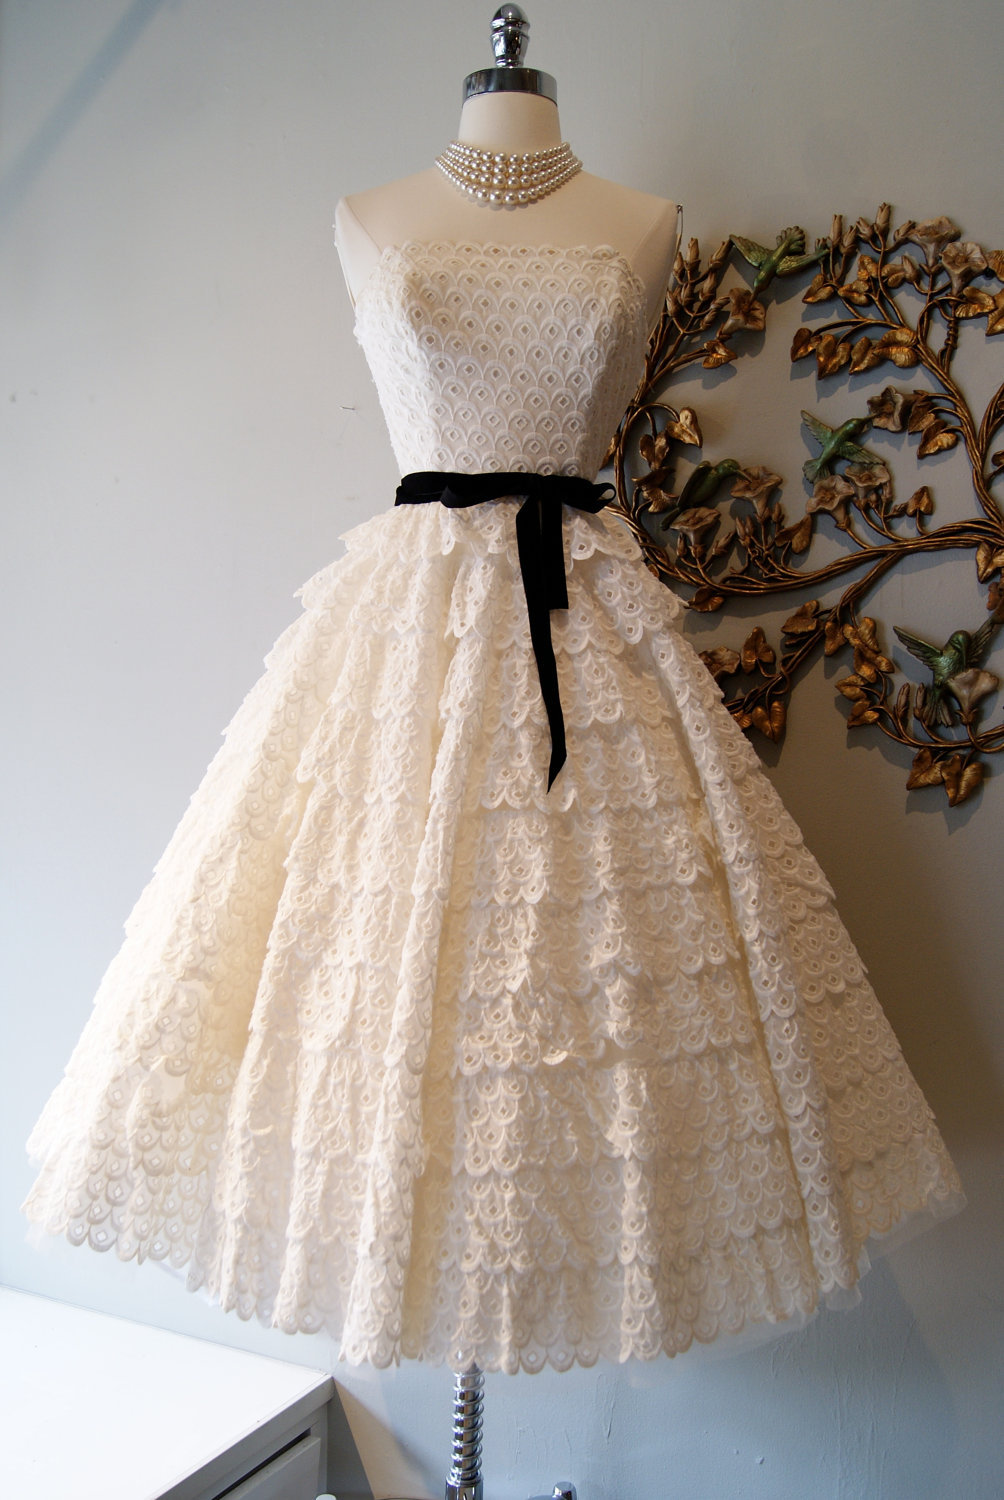 vintage wedding dress bridal gown inspiration from Etsy ...